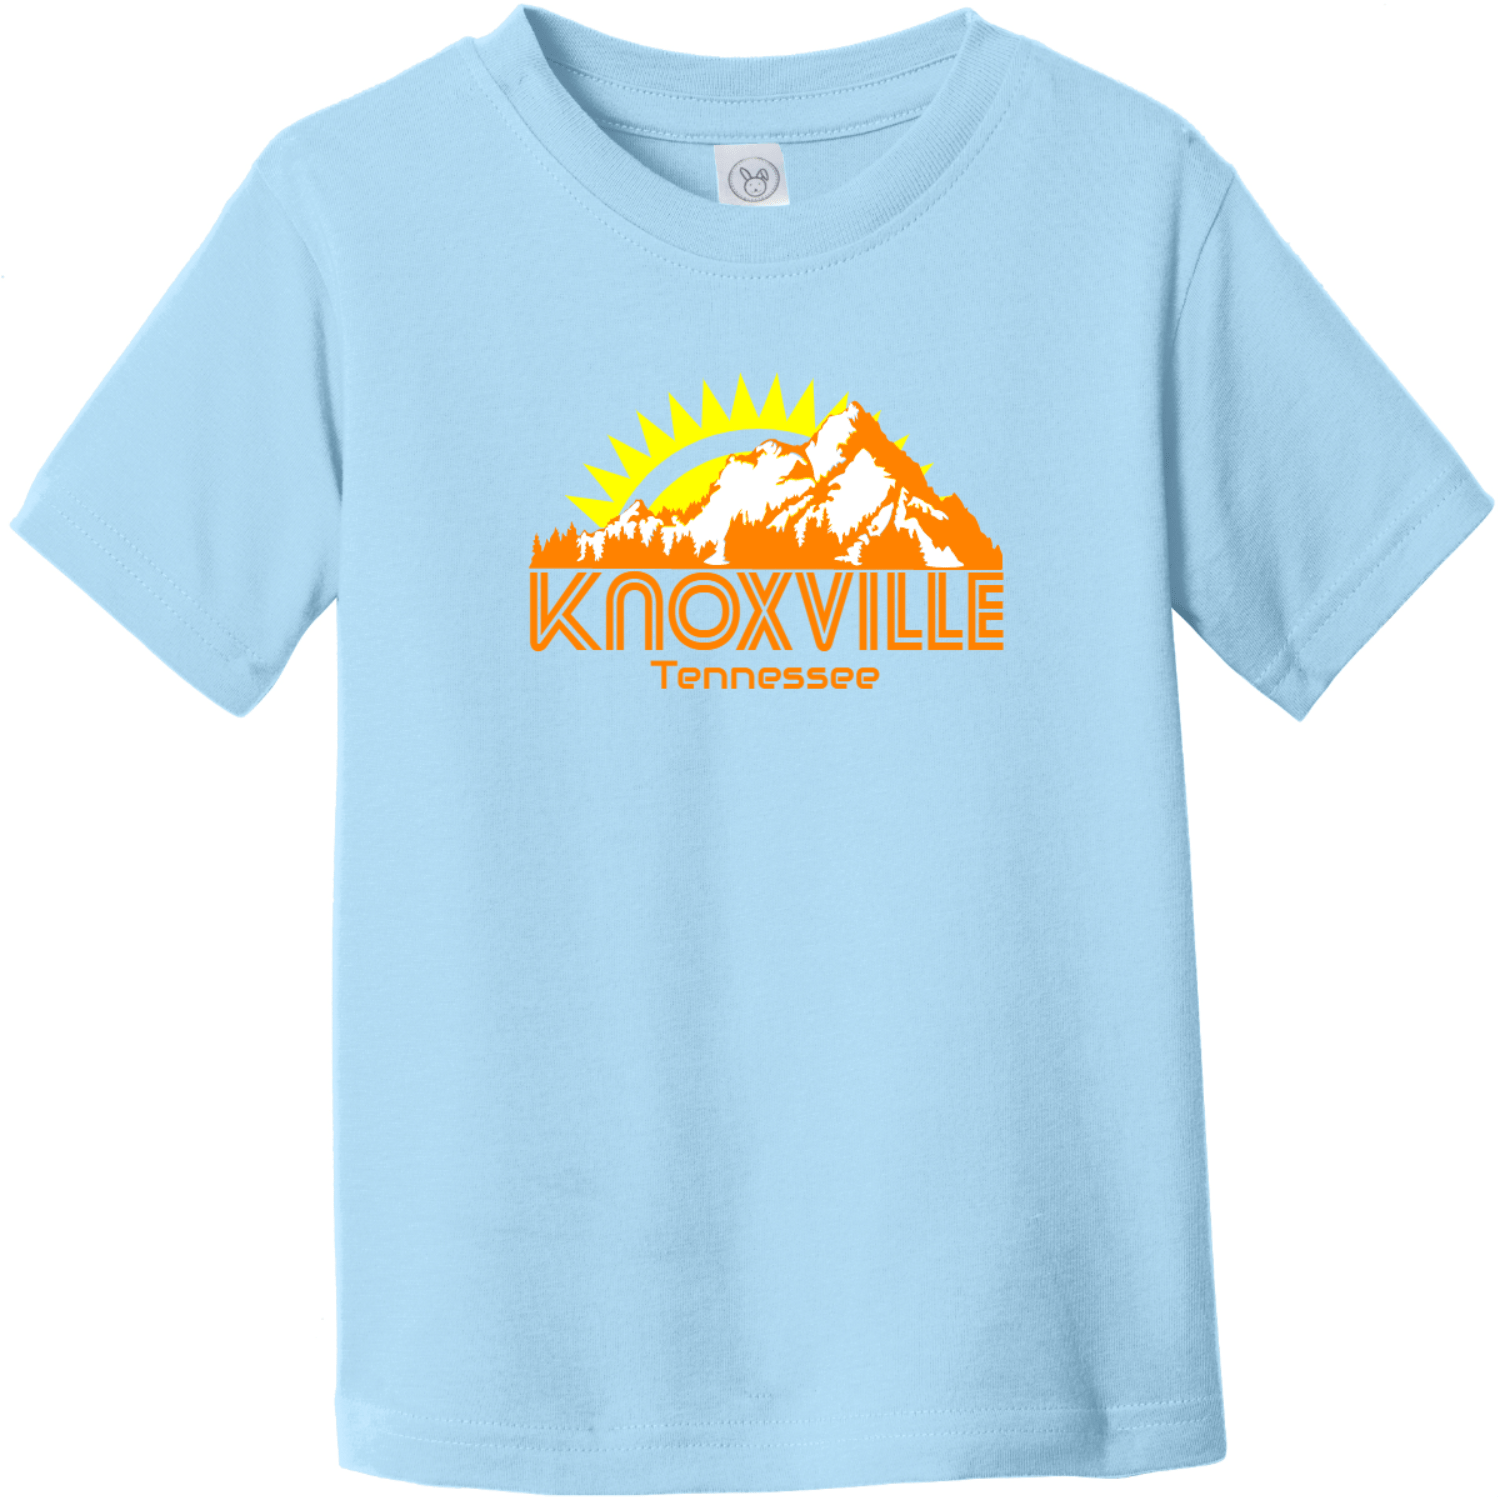 Knoxville Tennessee Mountains Toddler T Shirt Light Blue Rabbit Skins Toddler Fine Jersey Tee RS3321